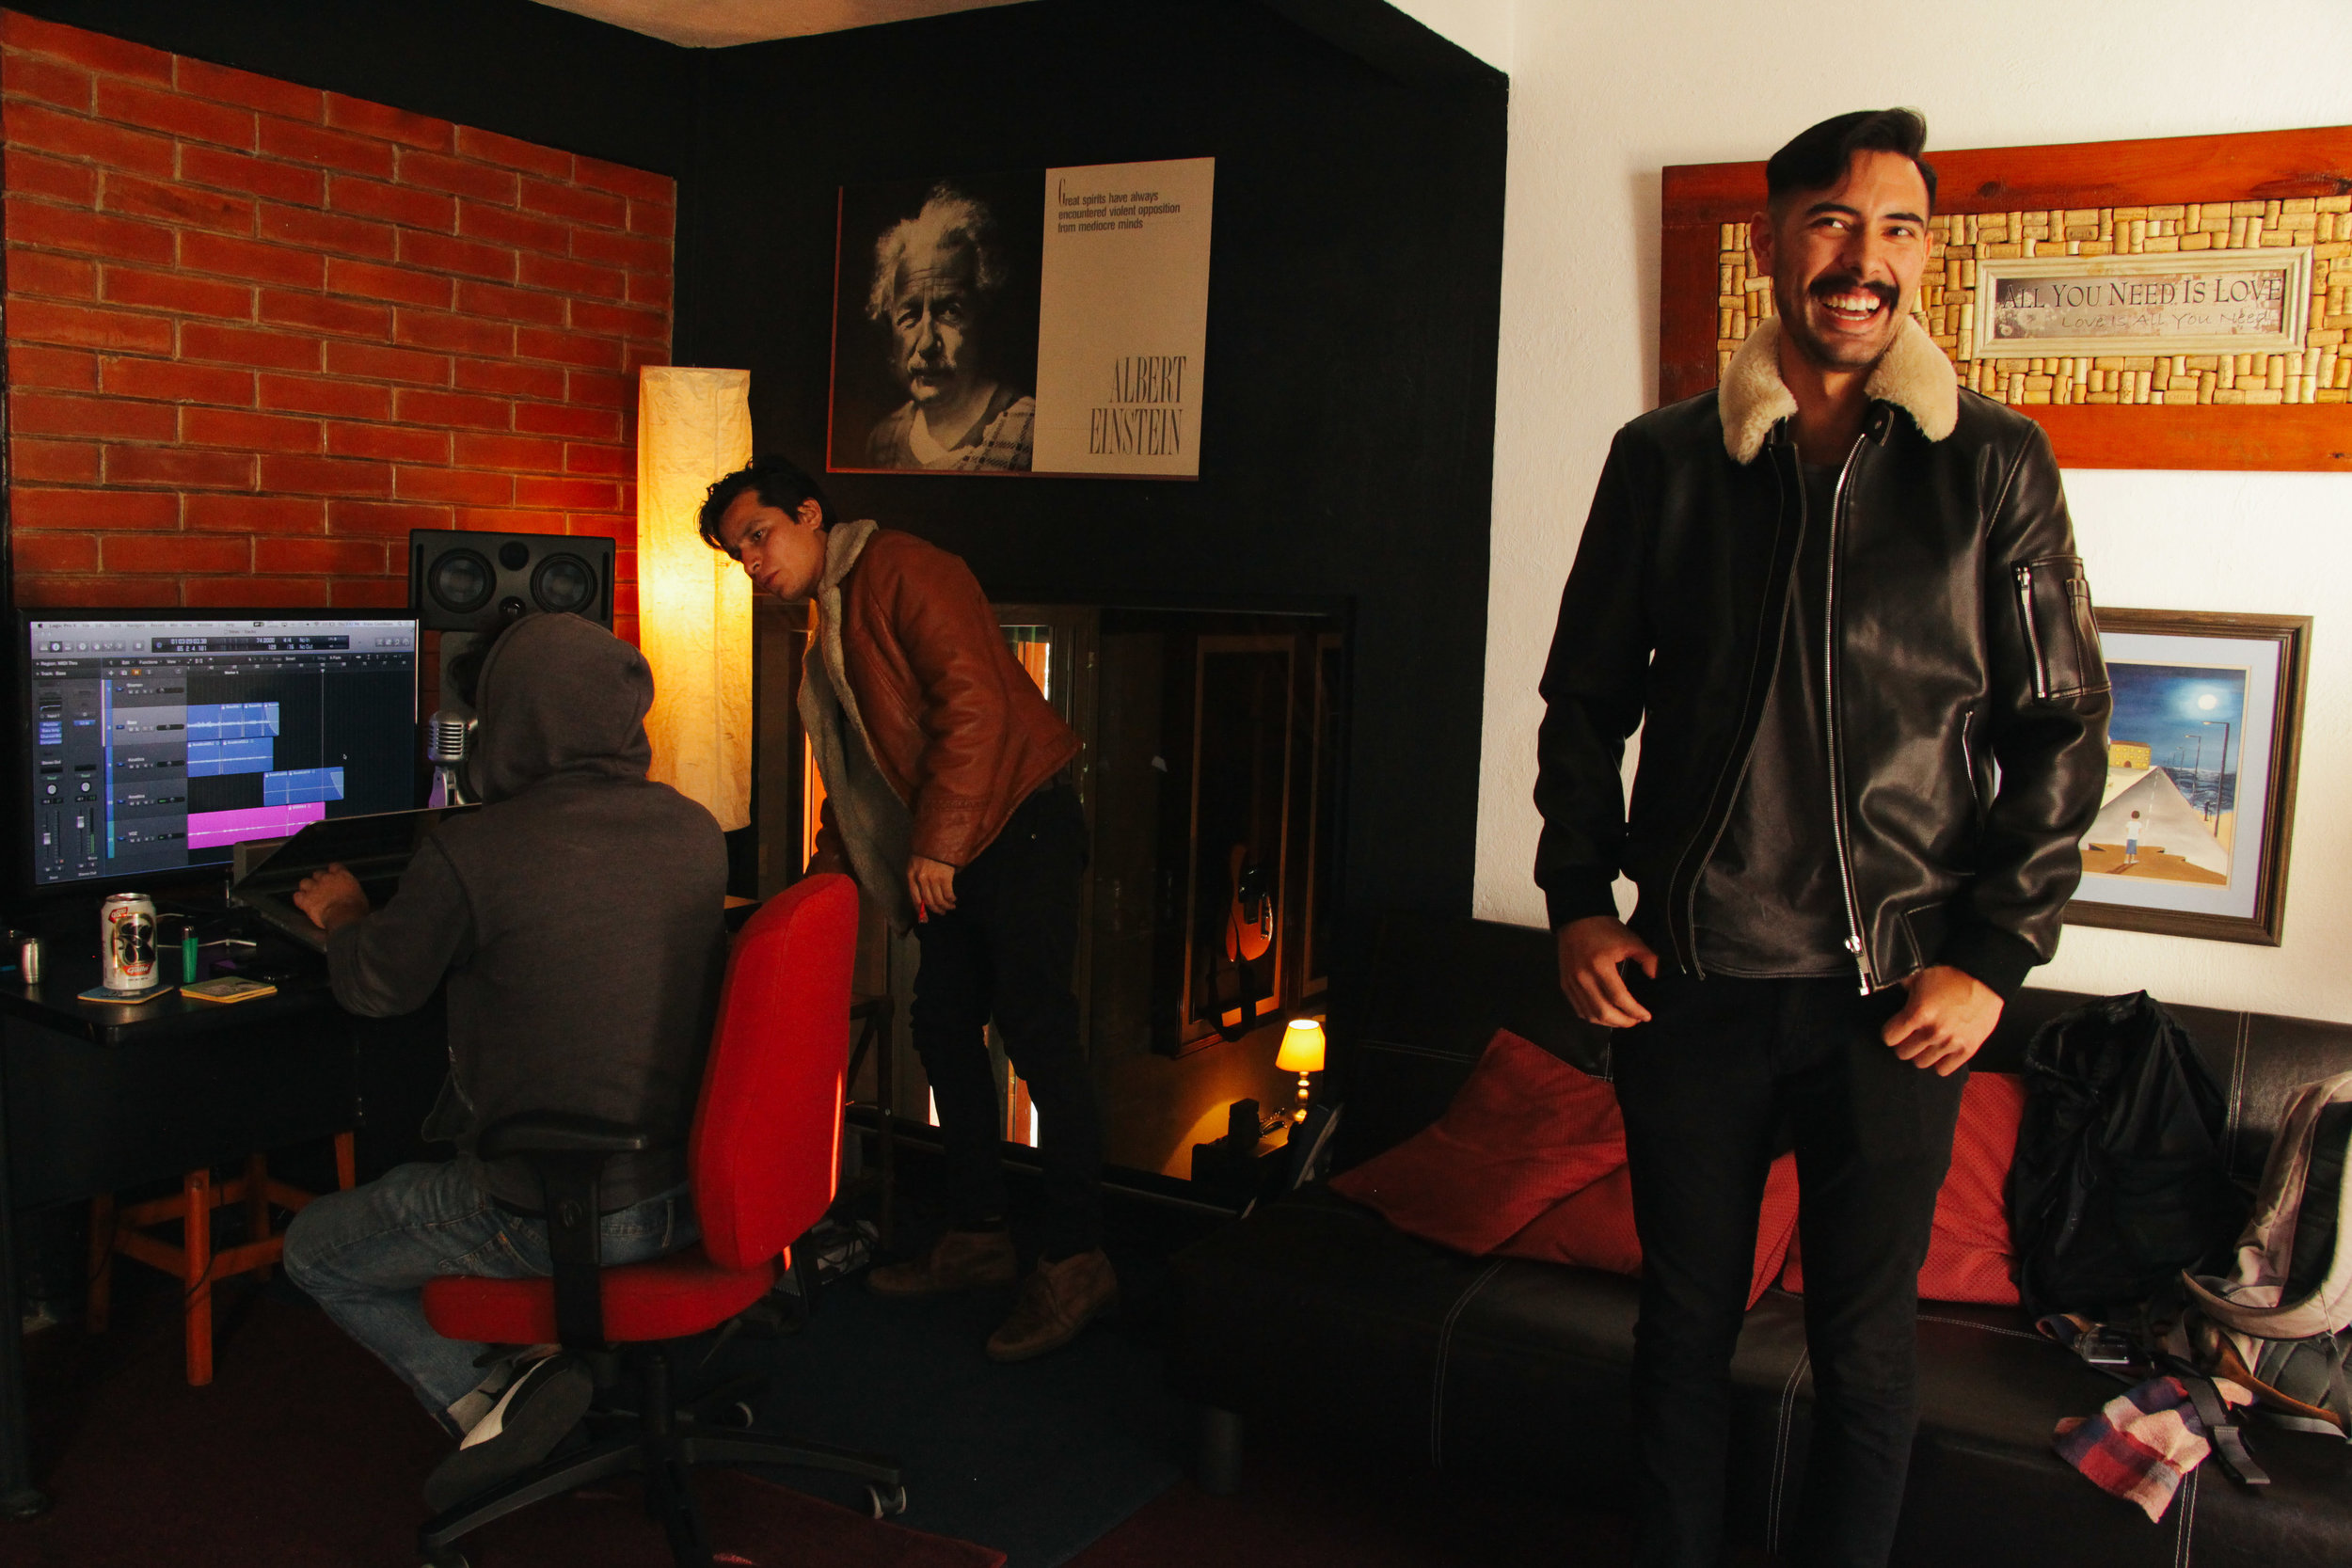 MUSICIAN SEBASTIÁN VILLATORO BENDAÑA CHUCKLES AS HE RECORDS TRACKS FOR HIS RECENT ALBUM WITH PRODUCERS DAVID SUÁREZ AND FRANC CASTILLEJOS AT RECORDING STUDIO ANÁLOGO DIGITAL ON JAN. 12. VILLATORO SINGS IN THE MIGHTY CURRENT, A FOLK AND BLUES BAND BASED OUT OF GUATEMALA CITY.